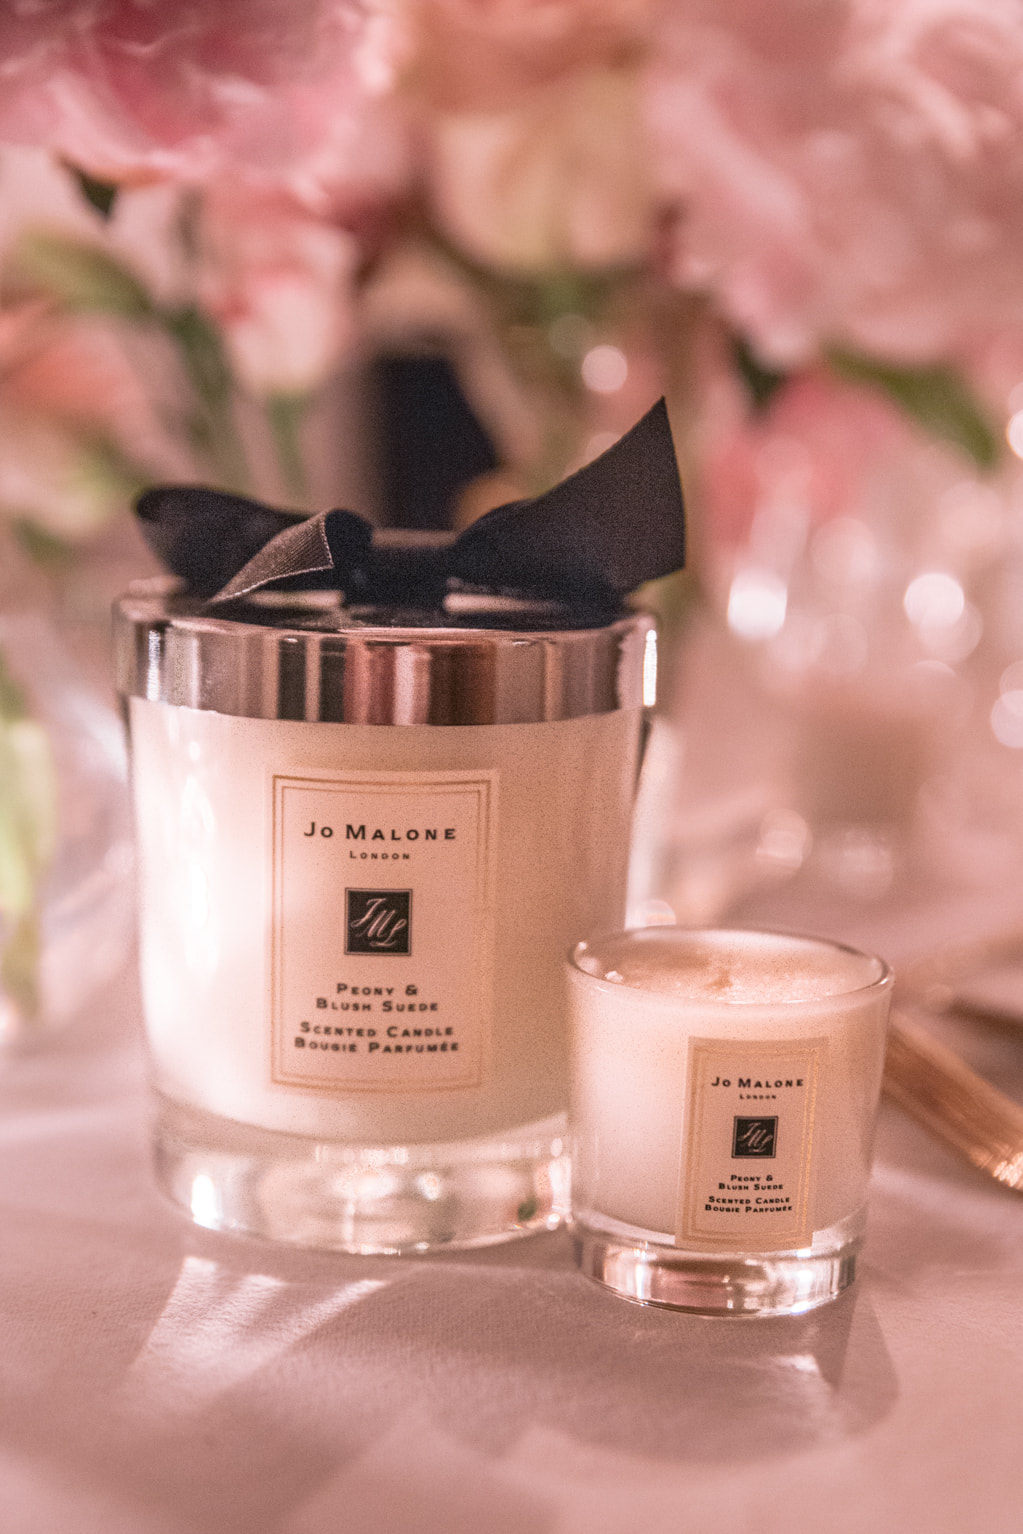 Jo Malone Christmas giveaway by The Belle Blog